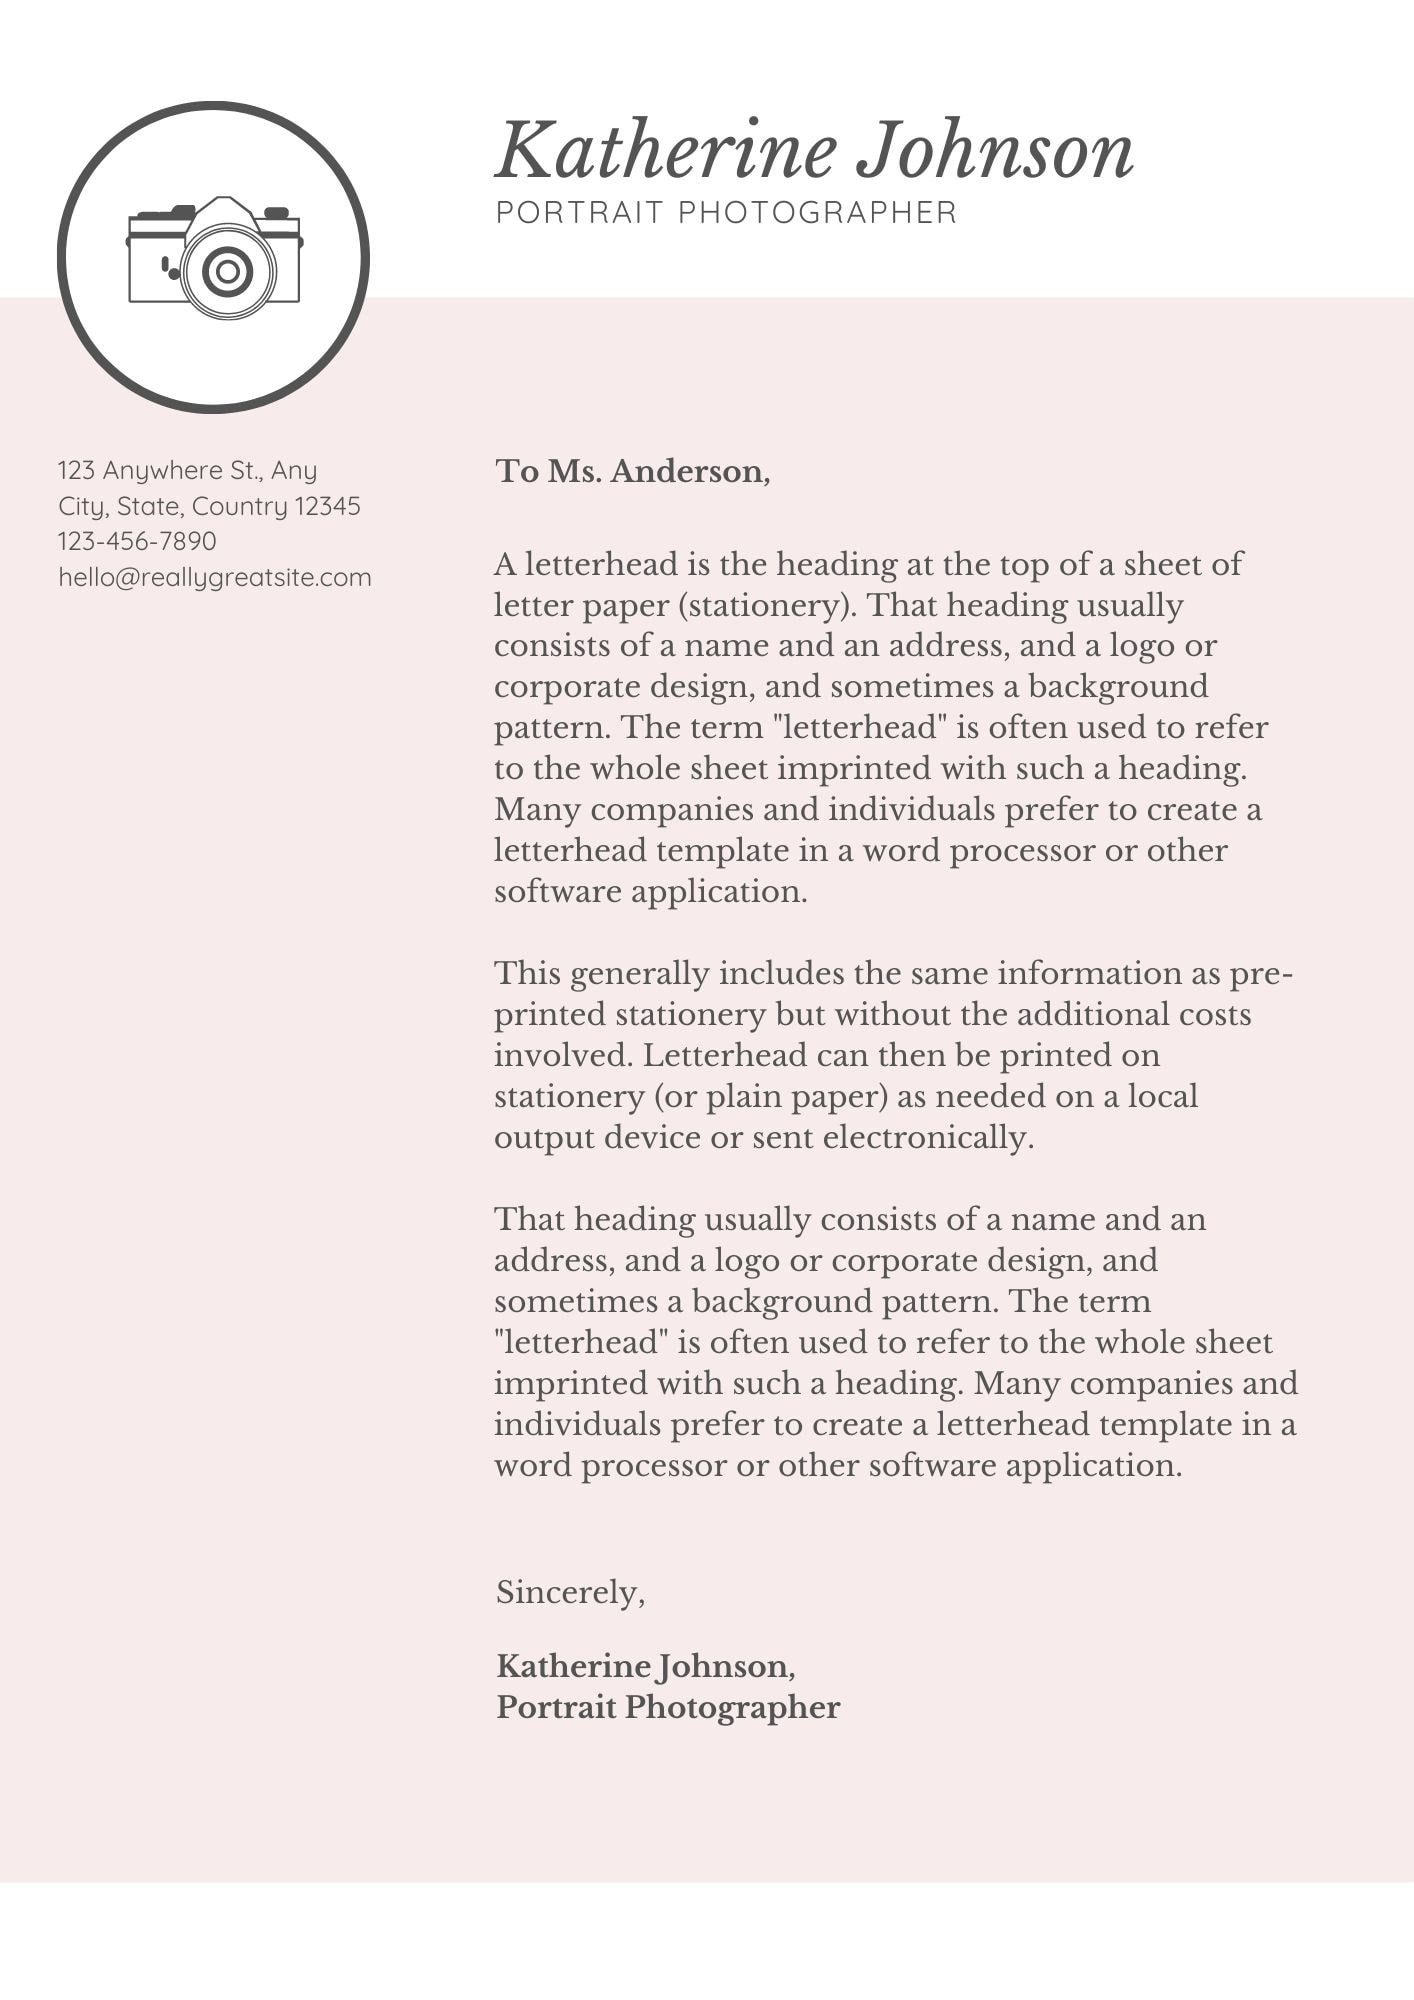 How To Write A Cover Letter Expert Tips Strong Examples Canva